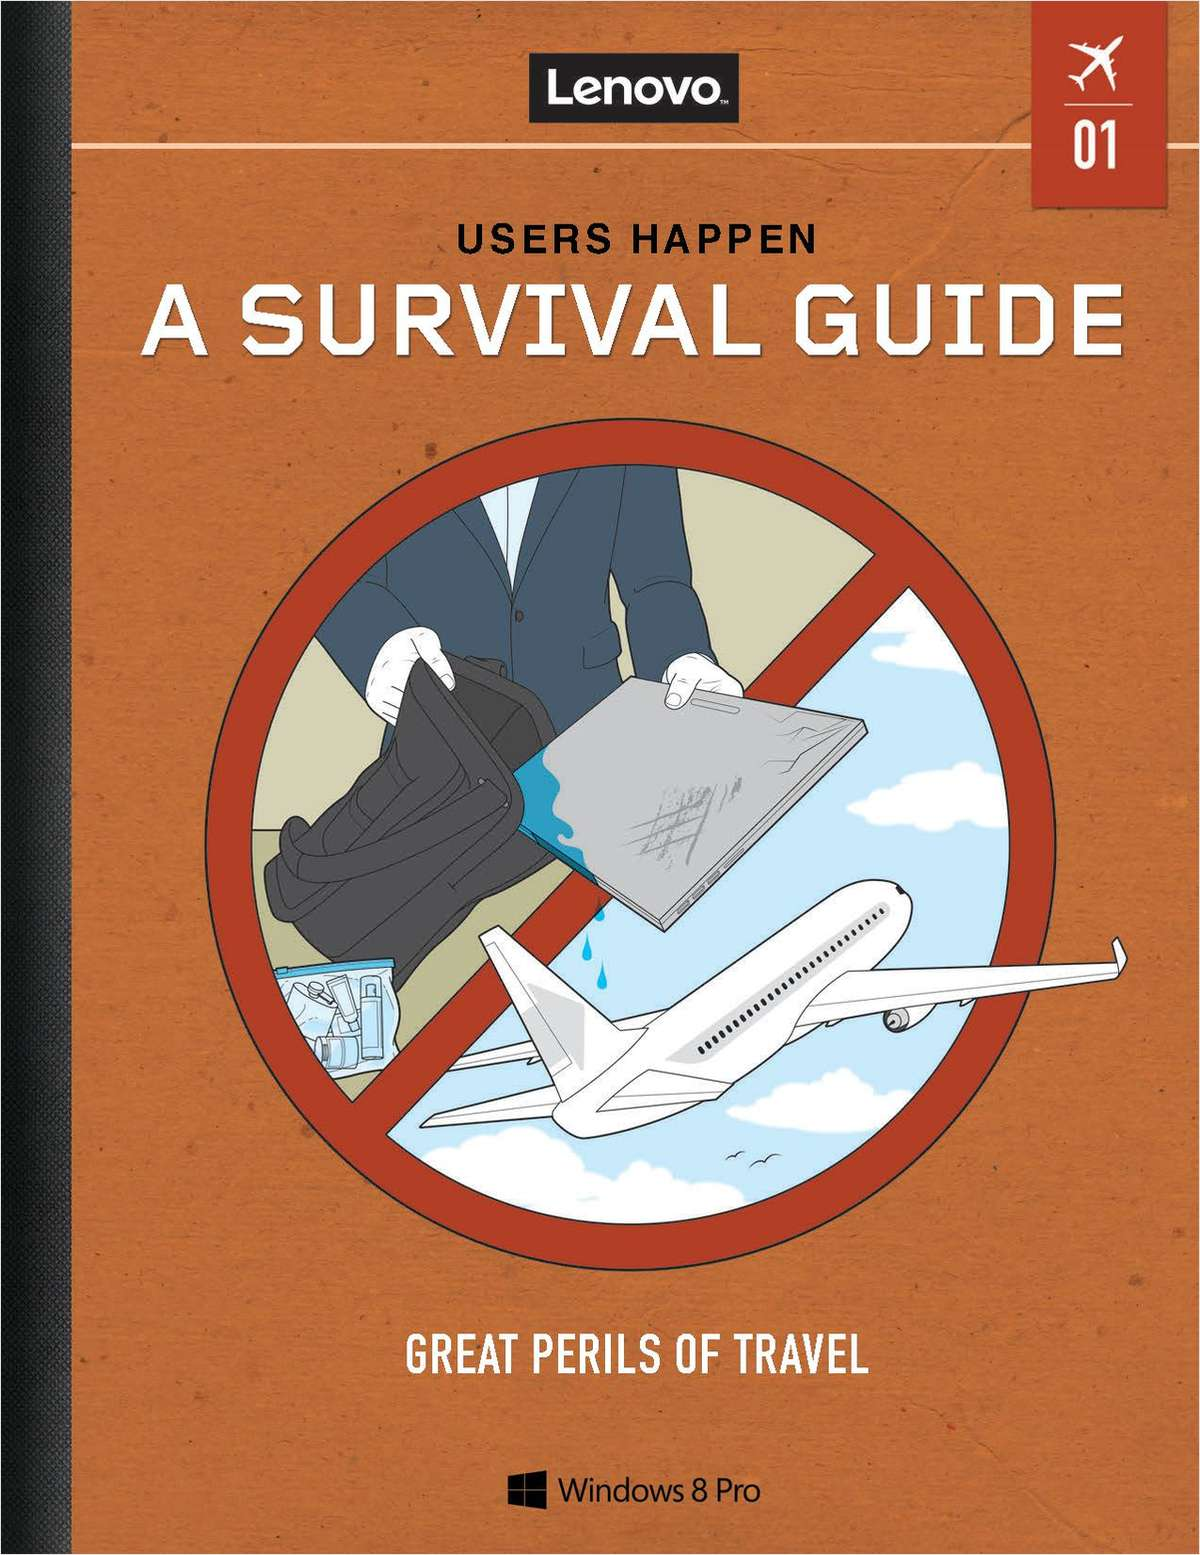 Users Happen: A Survival Guide - The Great Perils of Travel